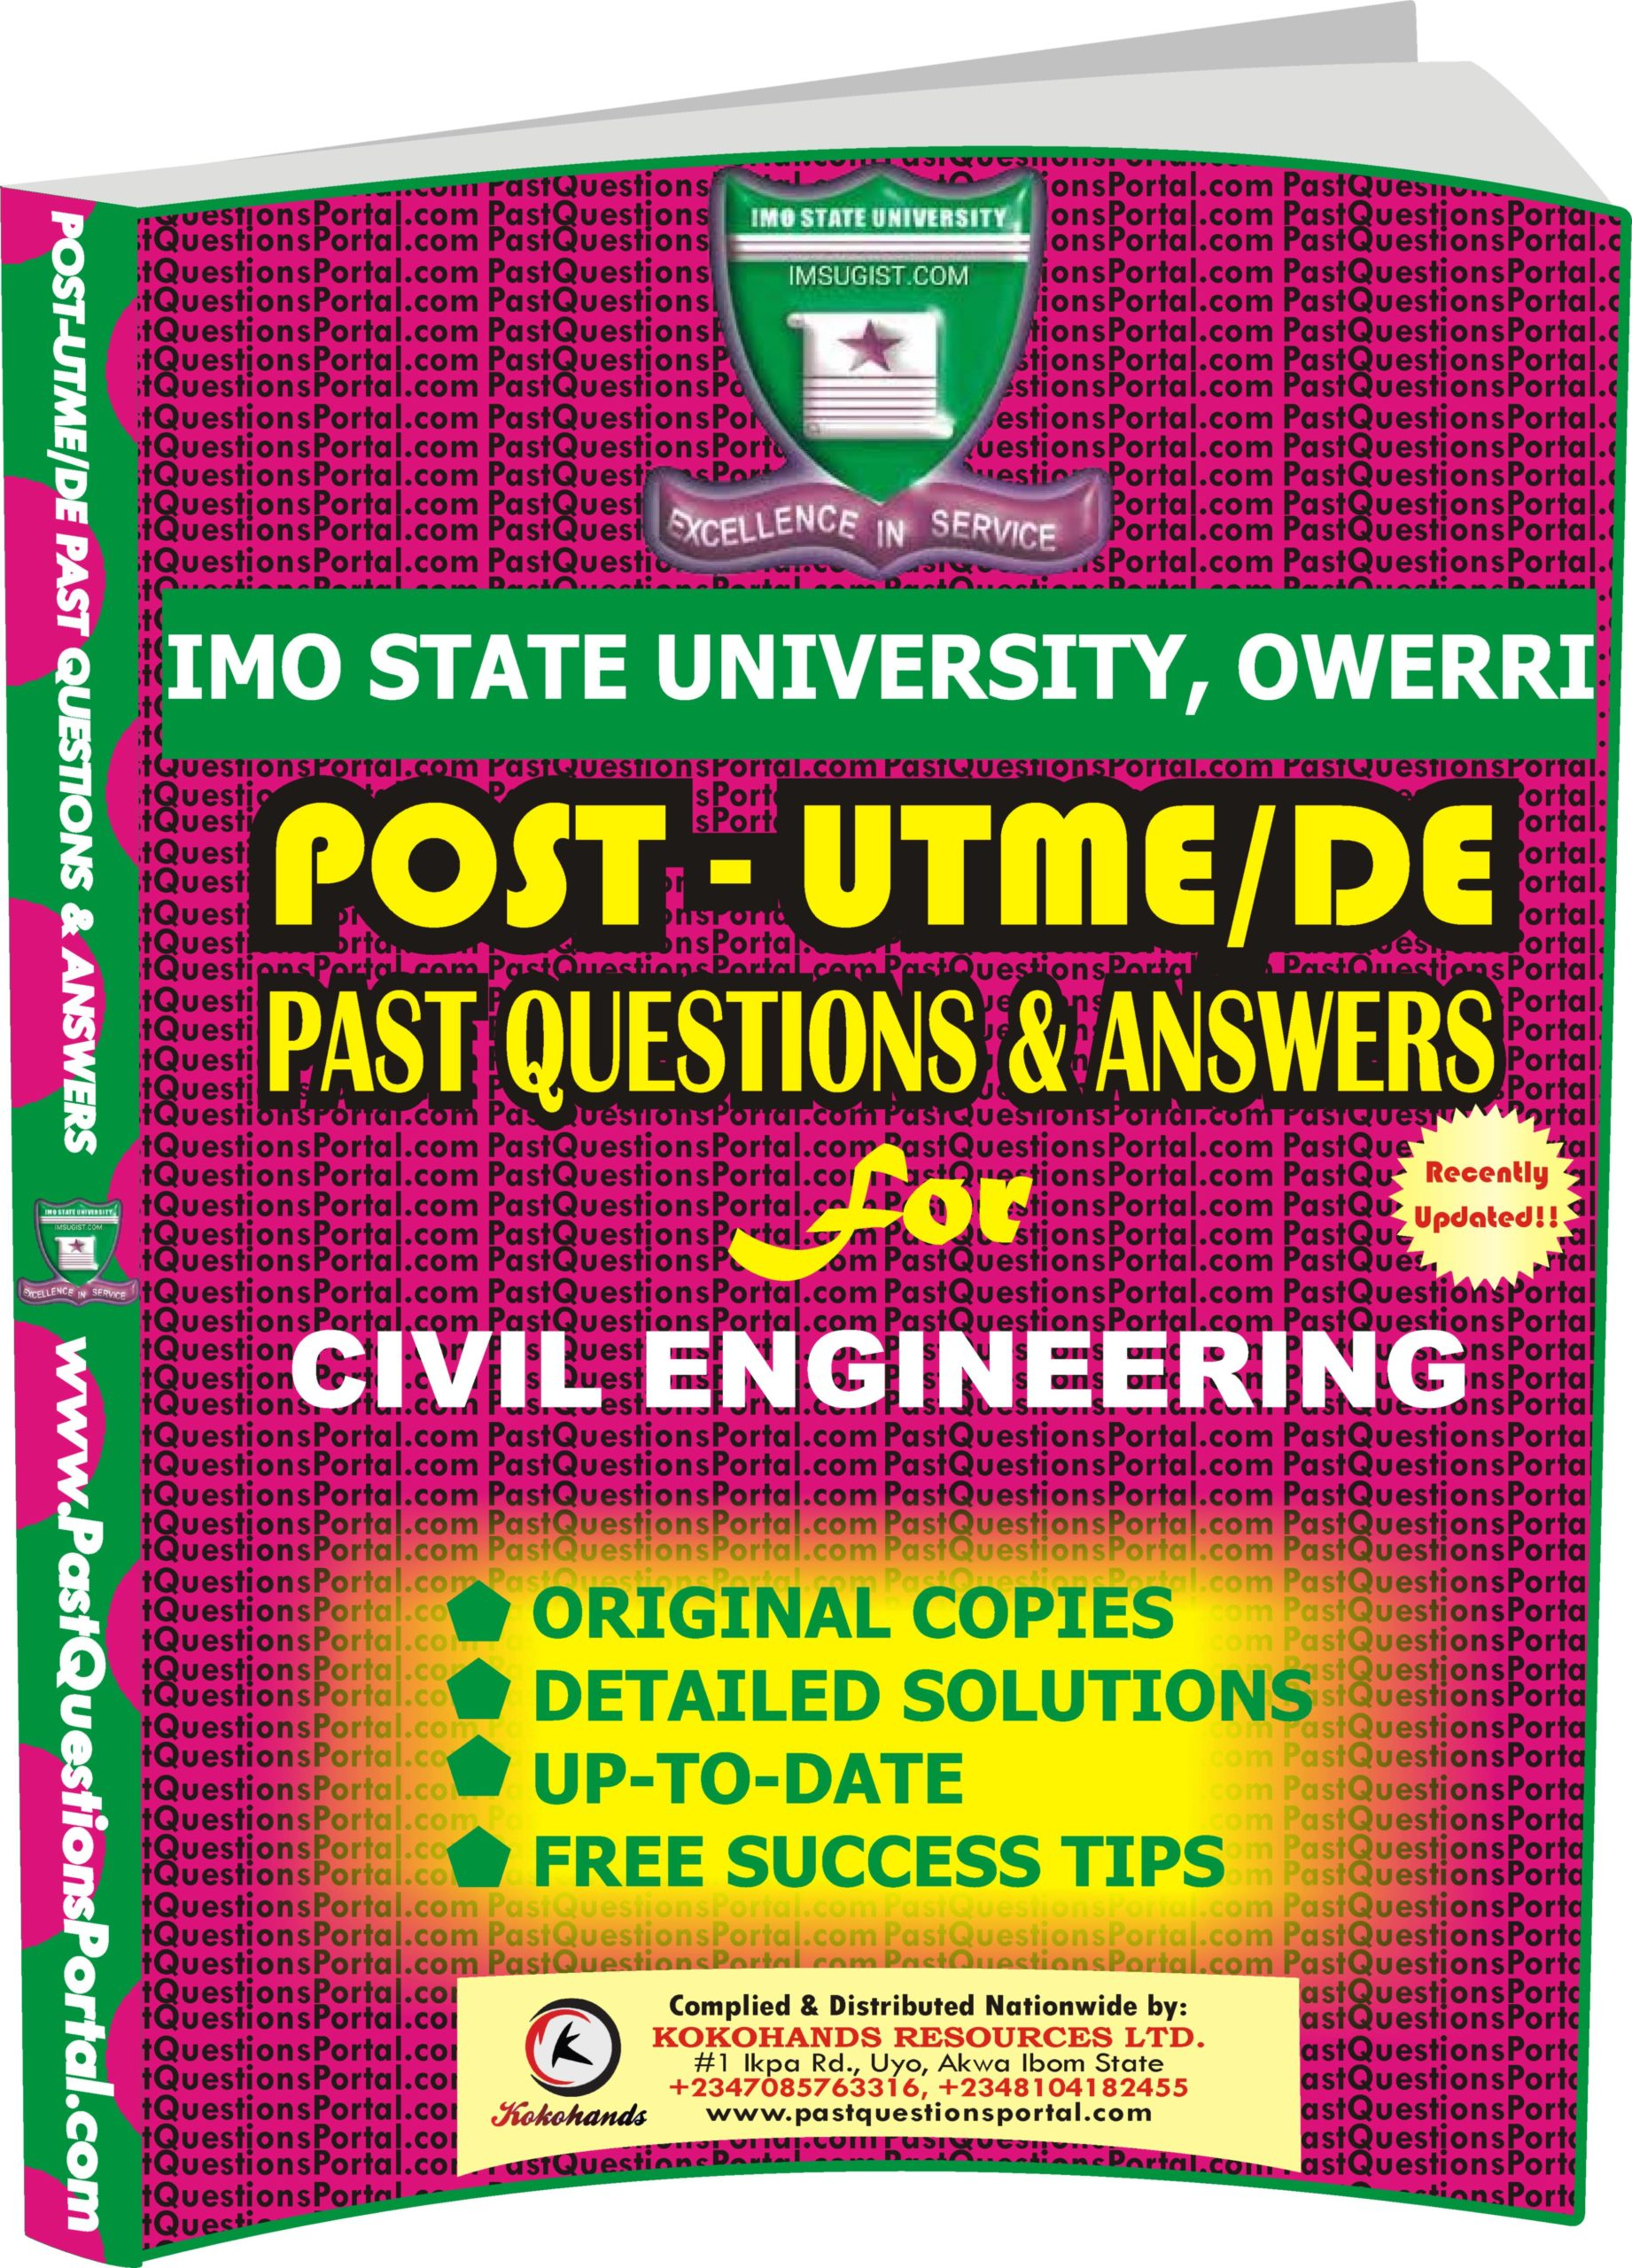 IMSU Post UTME Past Questions for CIVIL ENGINEERING